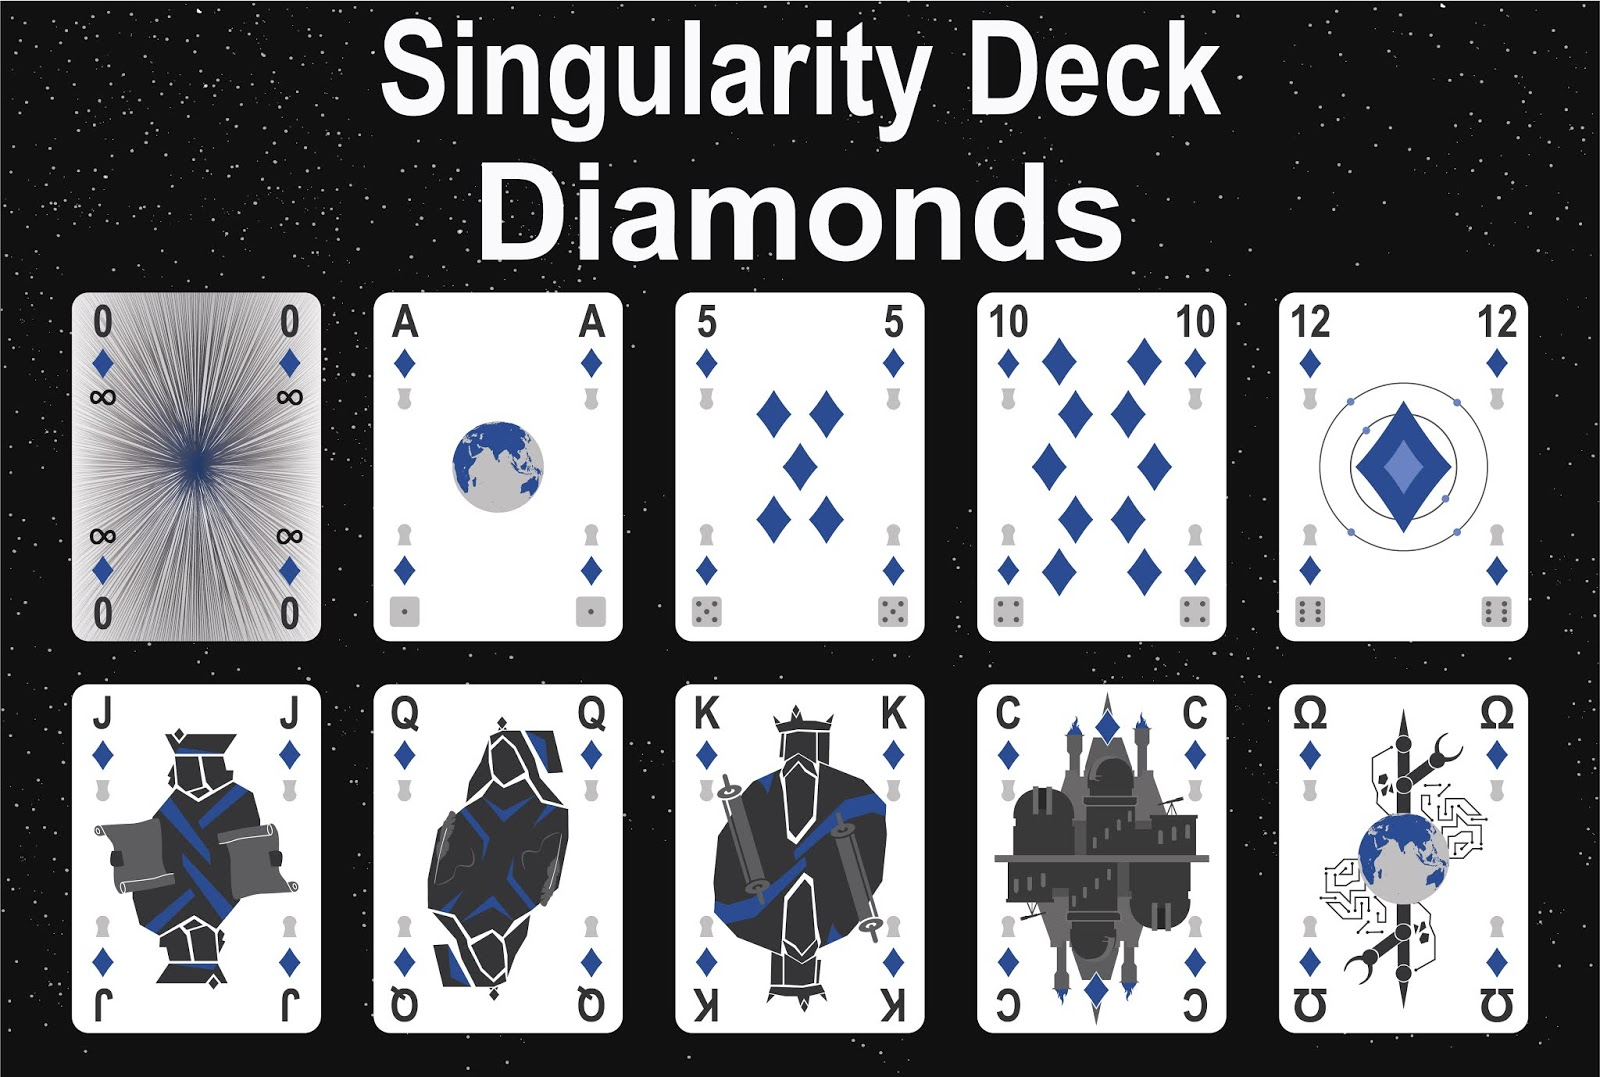 The Singularity Deck - Diamonds Art